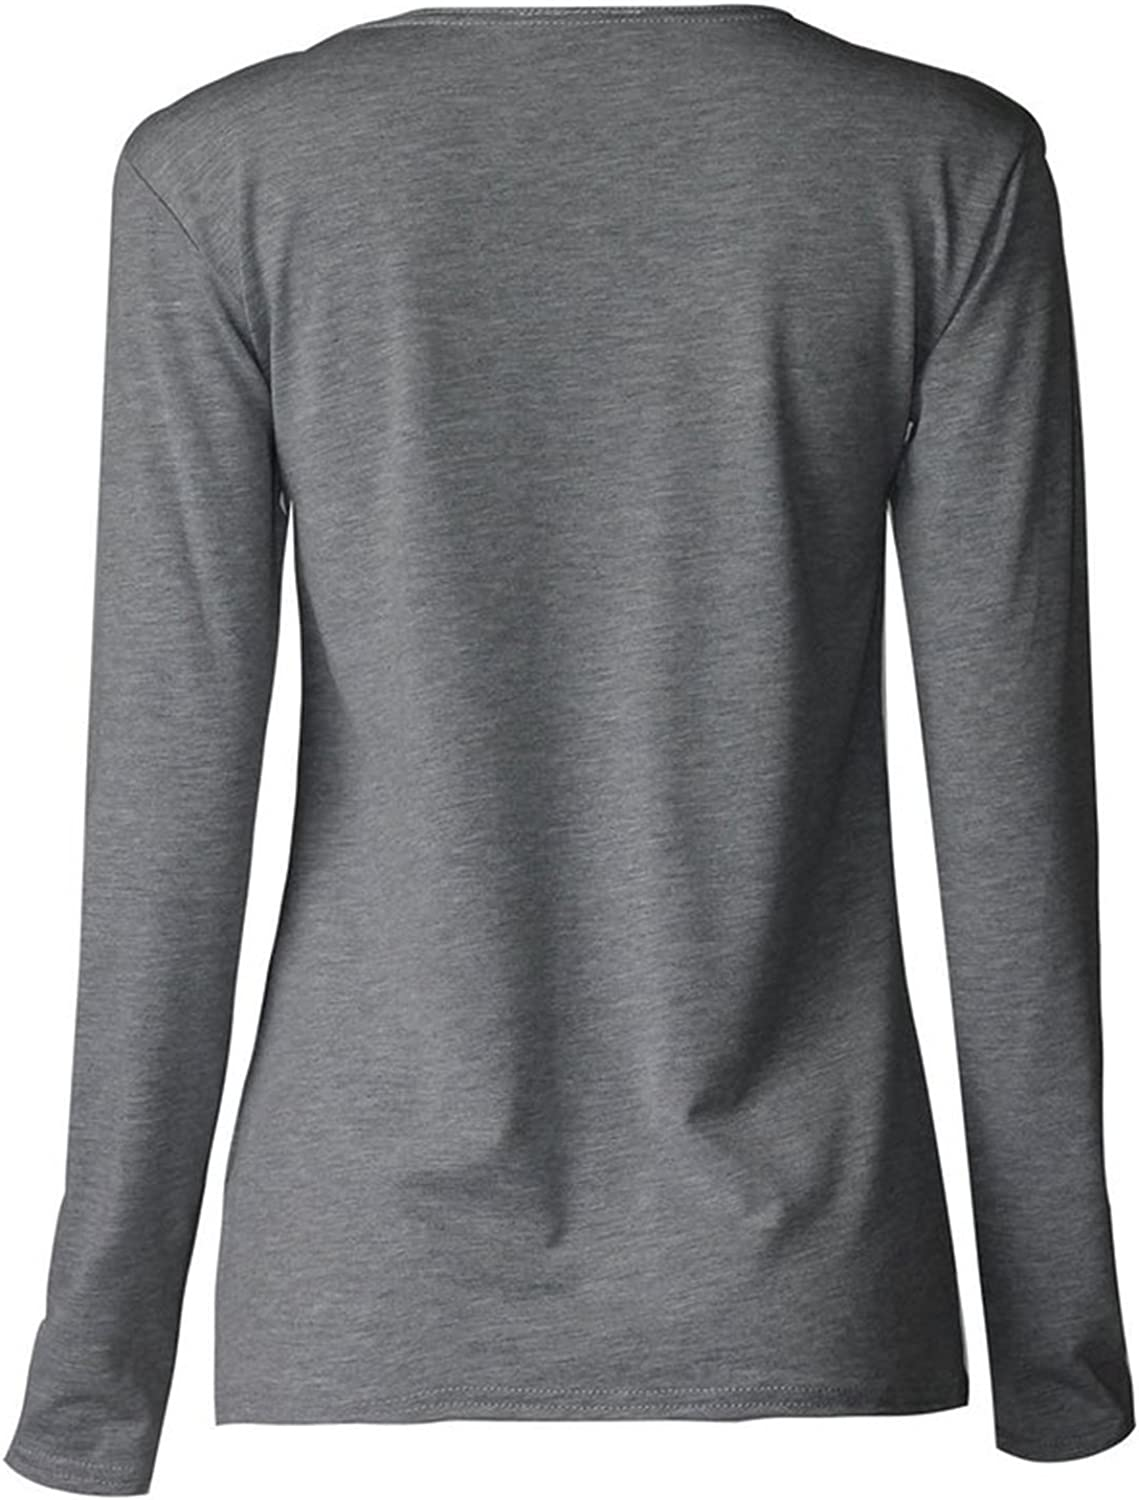 Girls Plain Long Sleeves Tee Scoop Neck Stretchy T-Shirt Top